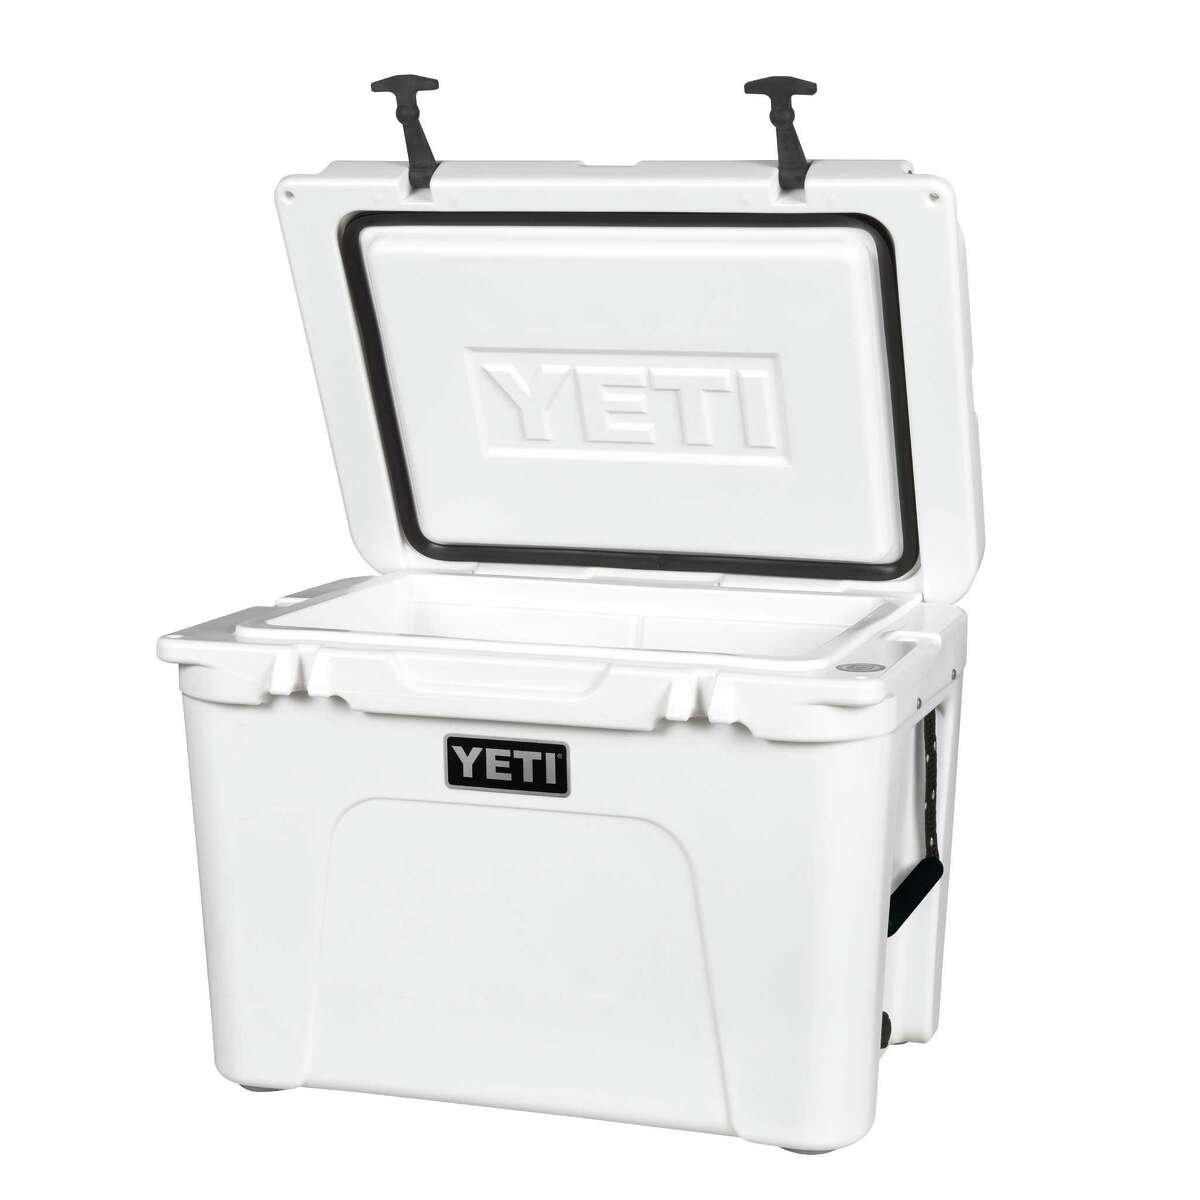 YETI customers have testified to the way the Austin-based company's products keep ice icy and have excellent seals, but one Texas couple apparently can now claim they owe their lives to one of the company's coolers. Click through to read how some of Texas' favorite brands came to be...